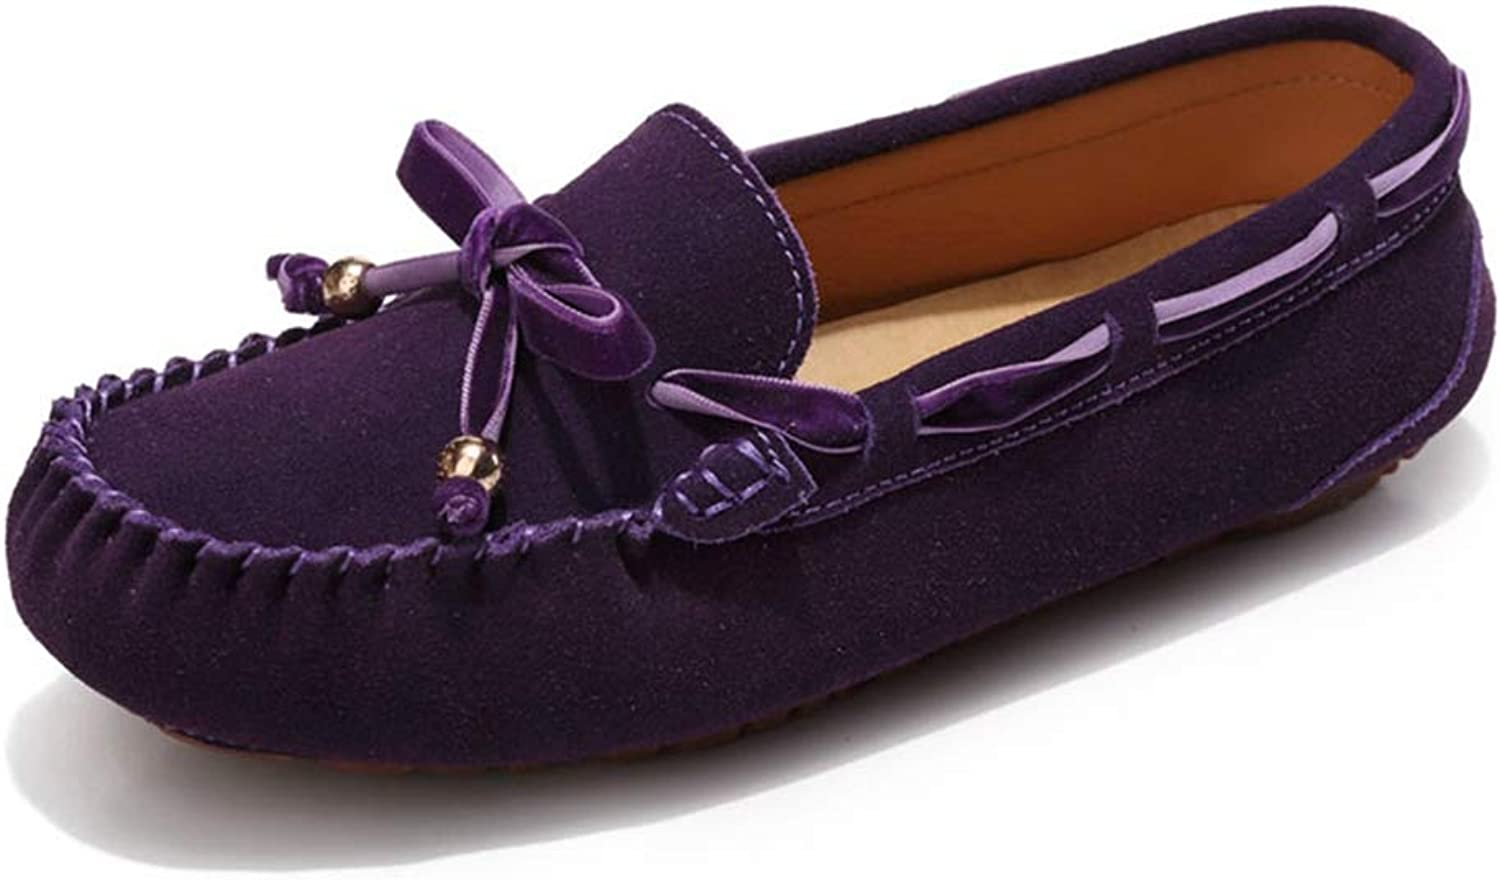 August Jim Women Loafers shoes,No-Slip Suede Leather shoes Ladies Moccasin Flats shoes